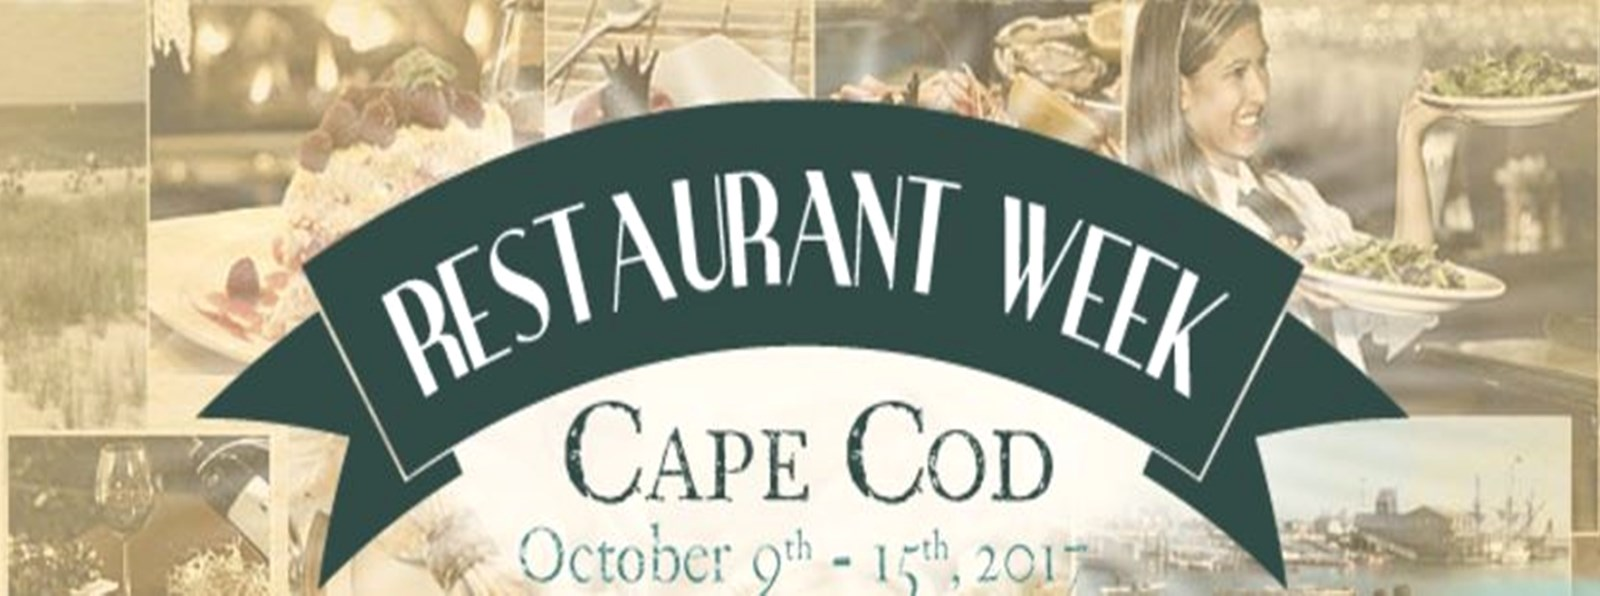 Each fall, Cape Cod, Martha's Vineyard and Nantucket provide the most amazing opportunity to enjoy their top restaurants. Enjoy 3 or 4-course meals at delicious prices.